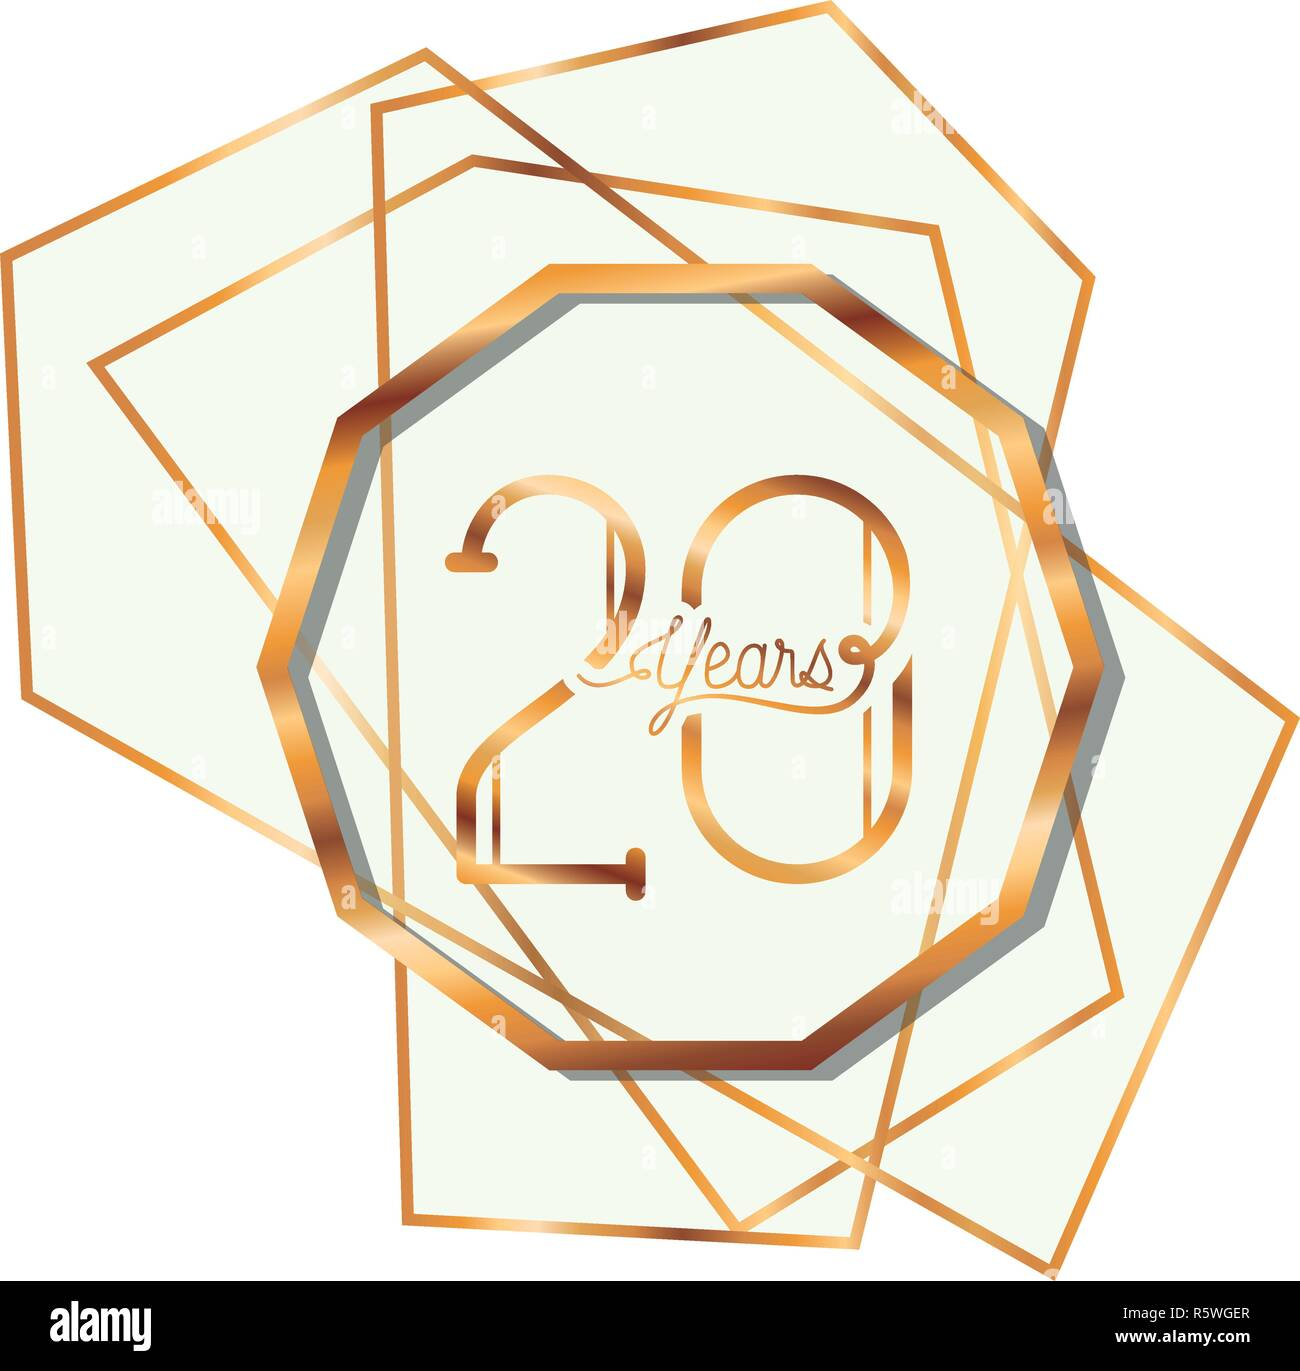 number 20 for anniversary celebration card icon - Stock Vector